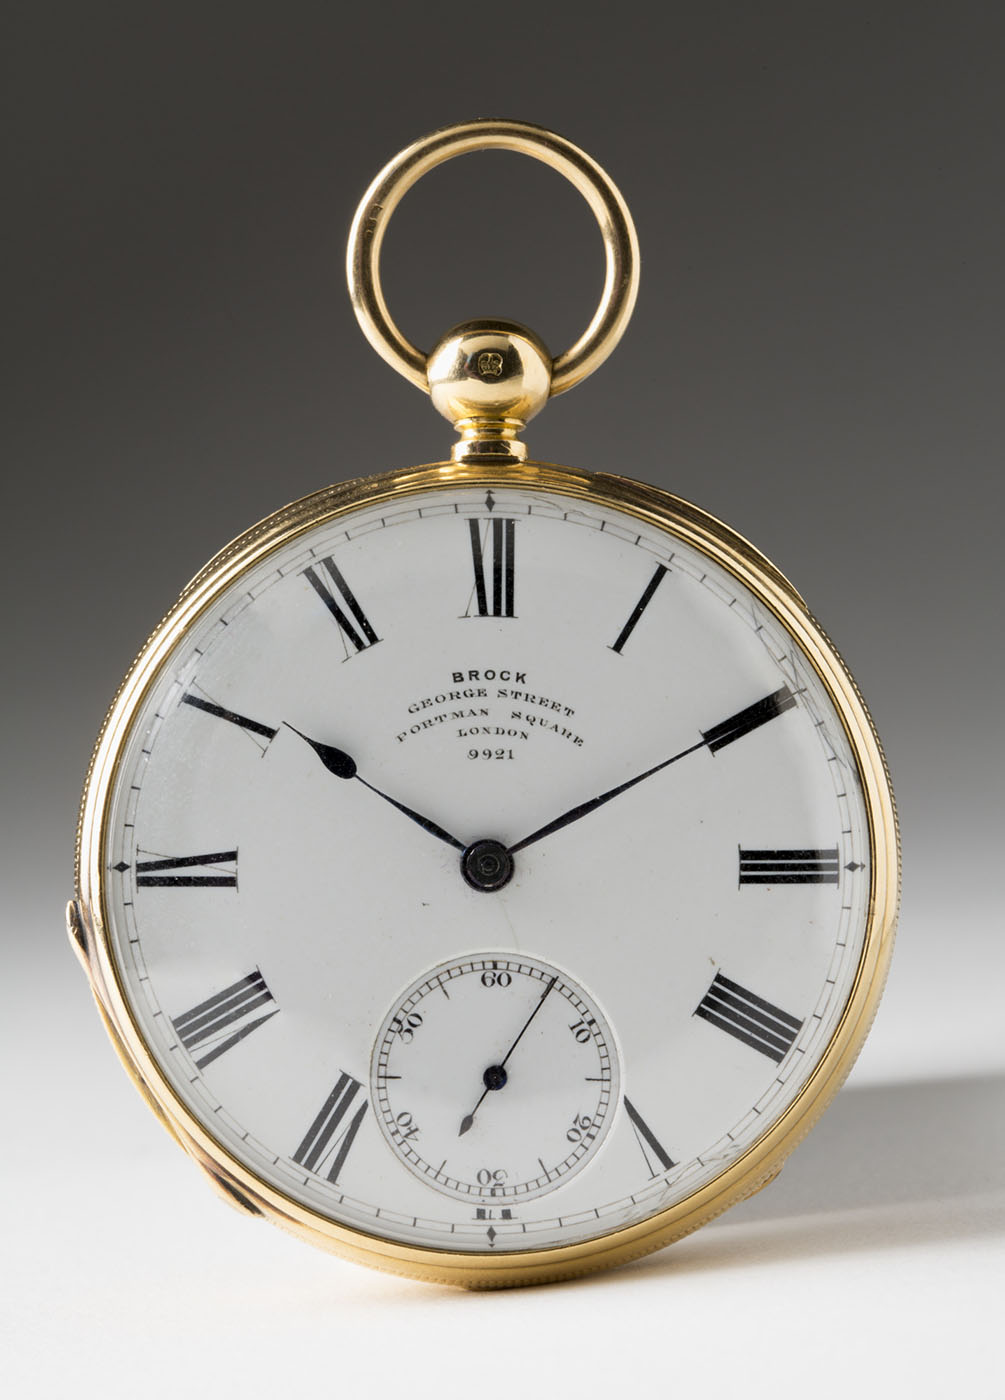 A gold pocket watch with roman numerals and text 'Brock, George Sydney' - click to view larger image